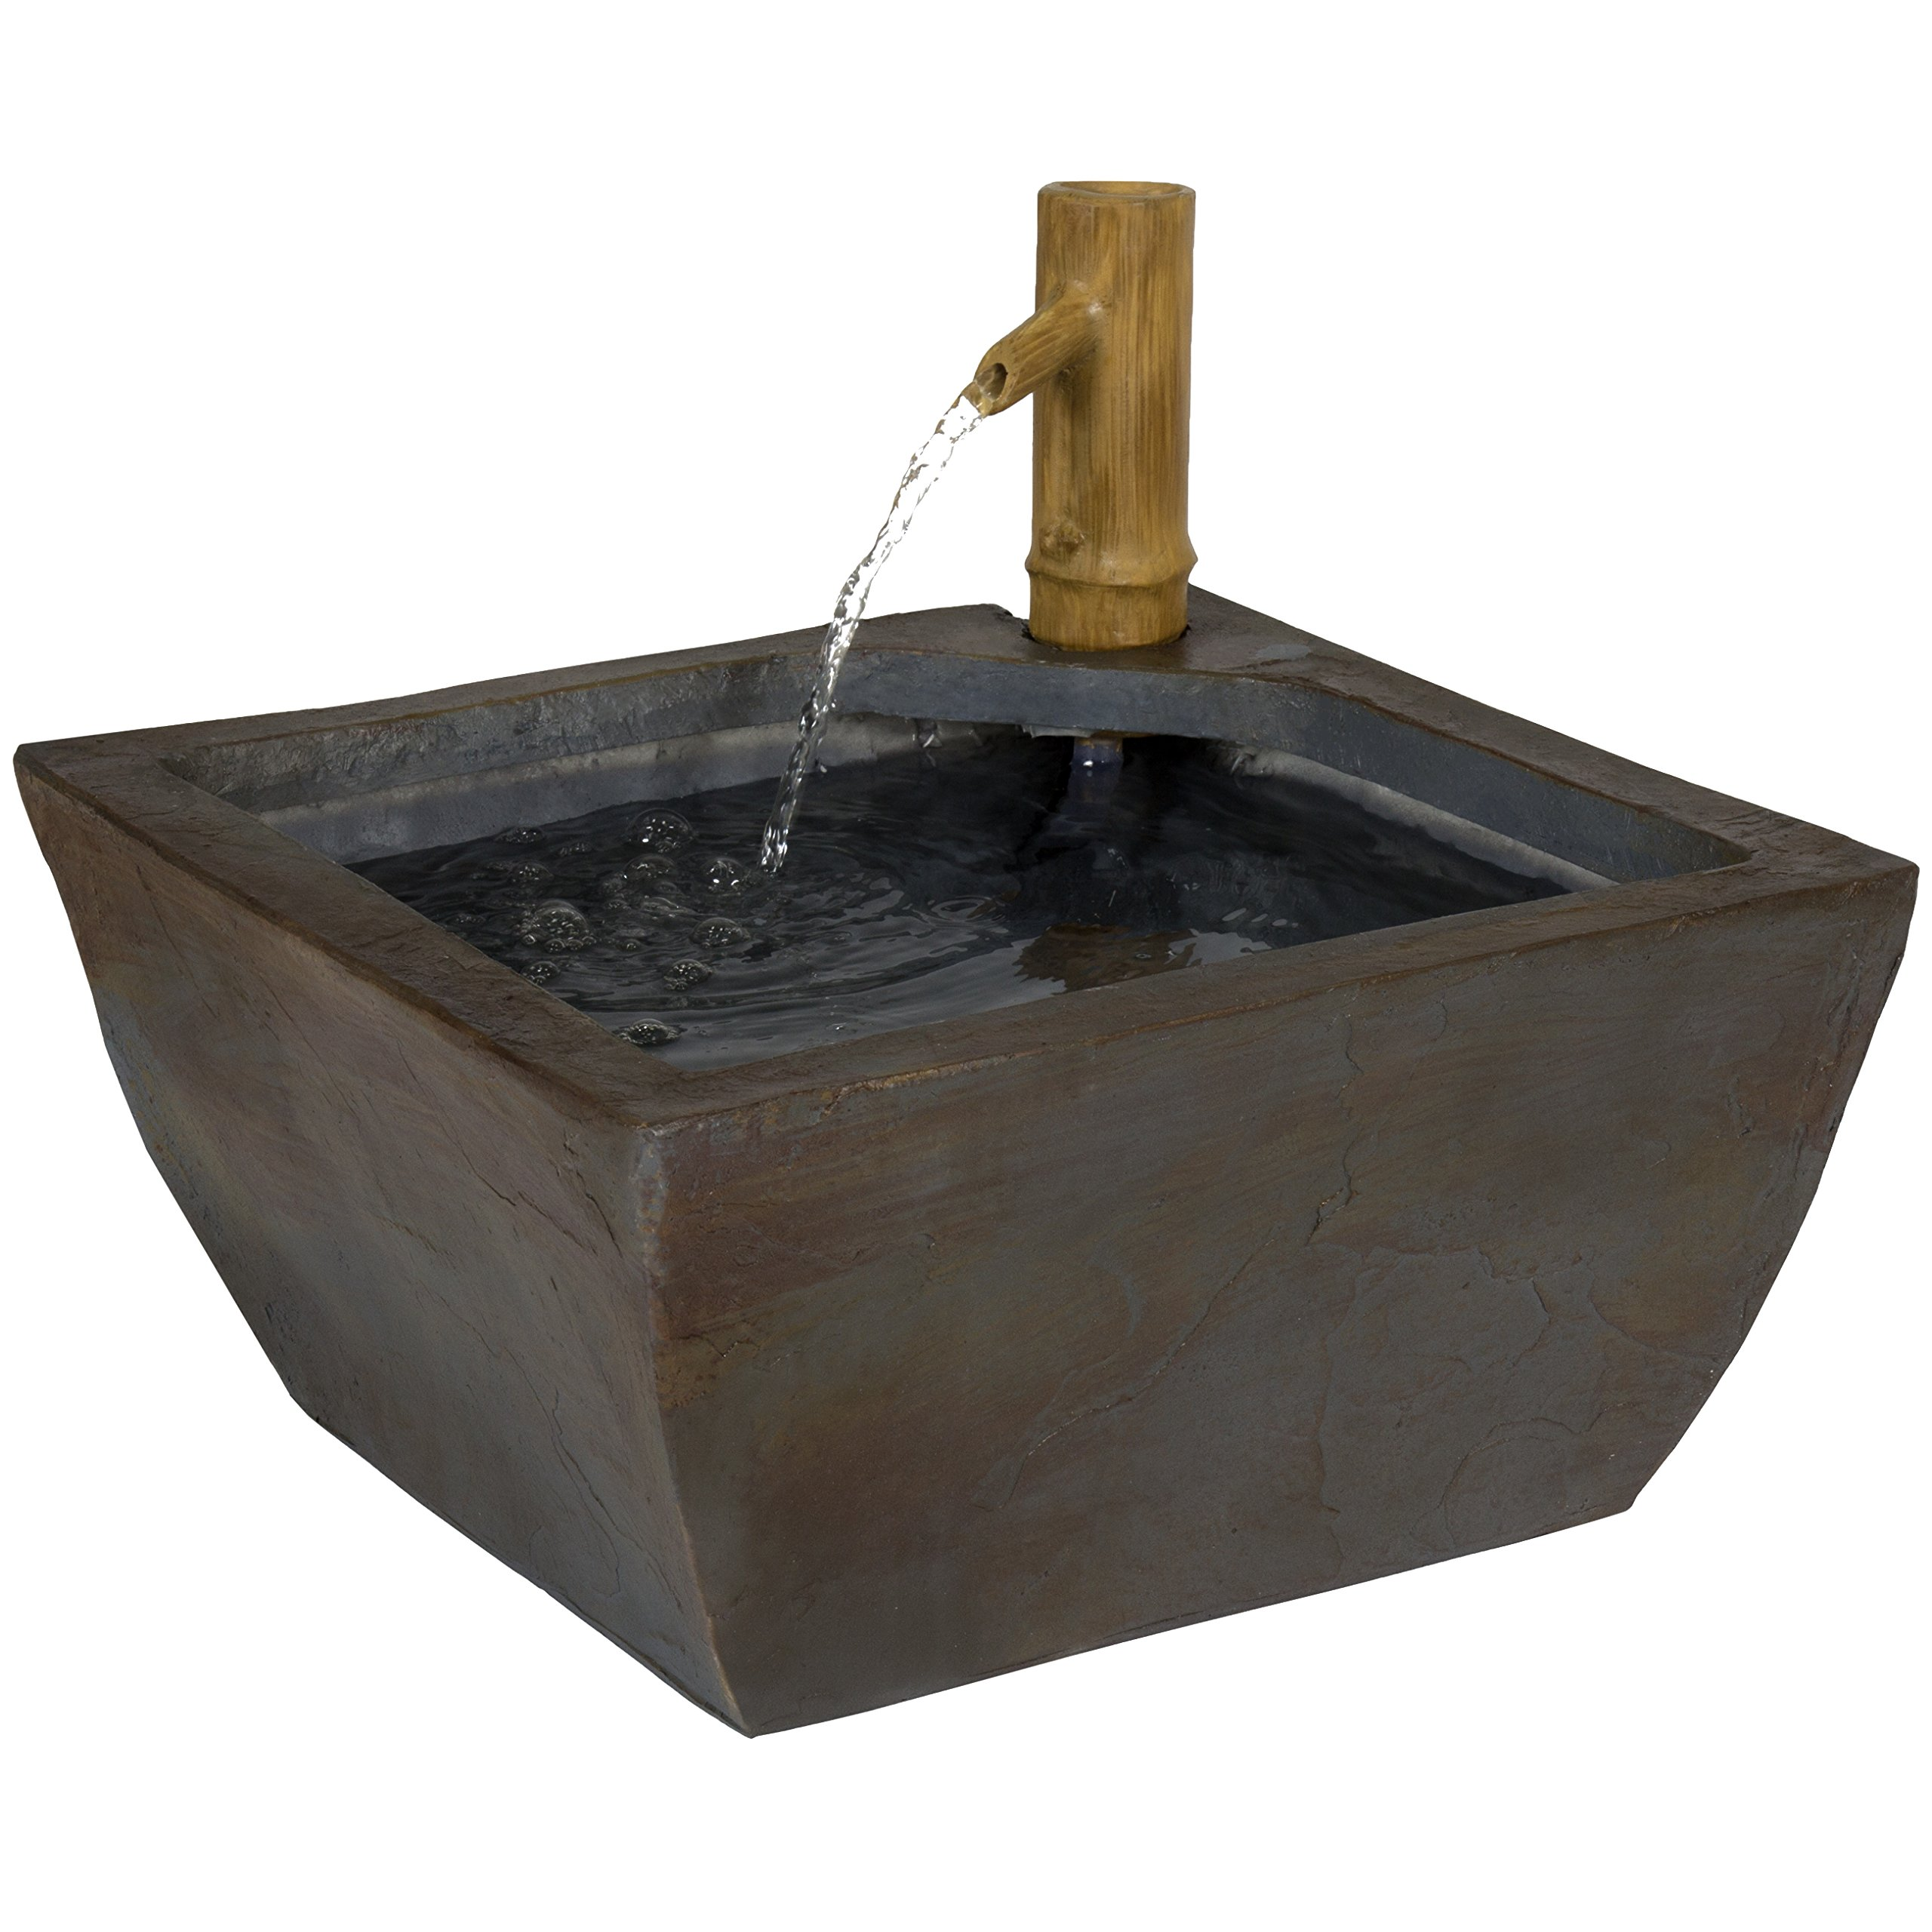 Best Choice Products 16in Indoor/Outdoor Polyresin Bamboo Spout Water Fountain, Backyard & Garden Decor w/Pump by Best Choice Products